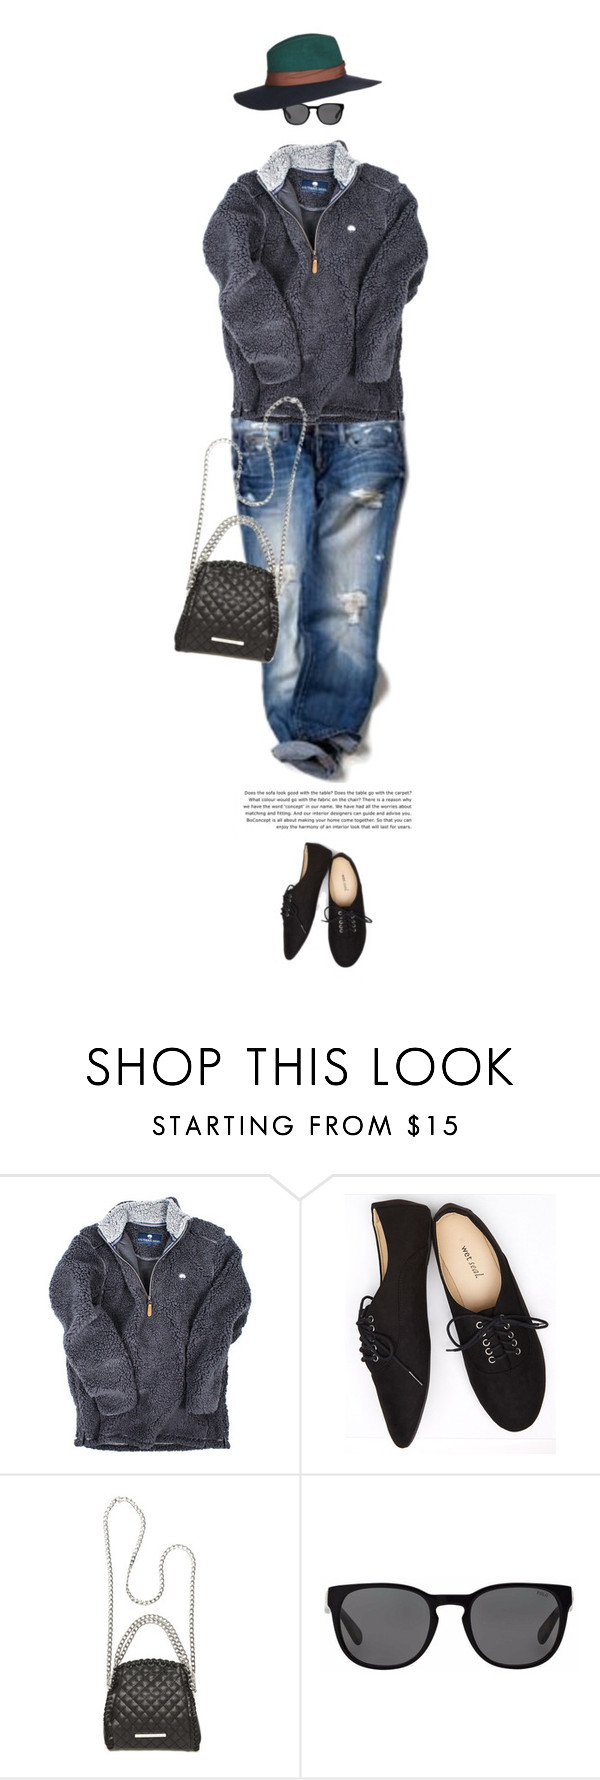 """""""Untitled #1321"""" by zayngirl1dlove ❤ liked on Polyvore featuring Wet Seal, Steve Madden, Polo Ralph Lauren and Topshop"""